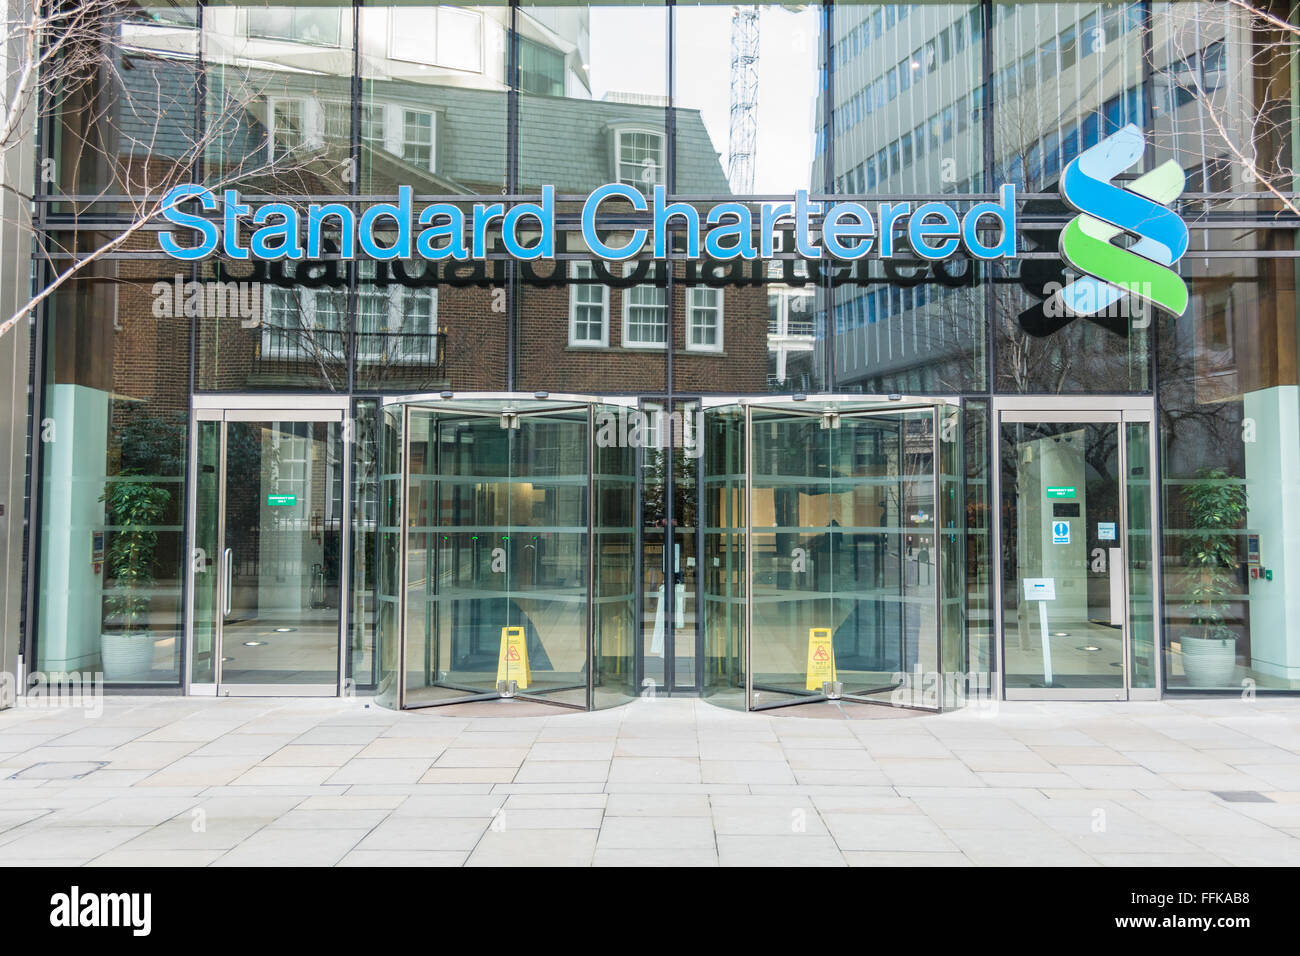 an analysis of standard chartered in london Standard chartered plc is a miscellaneous business credit agency located in london, england view phone number, employees, products, revenue, and more.